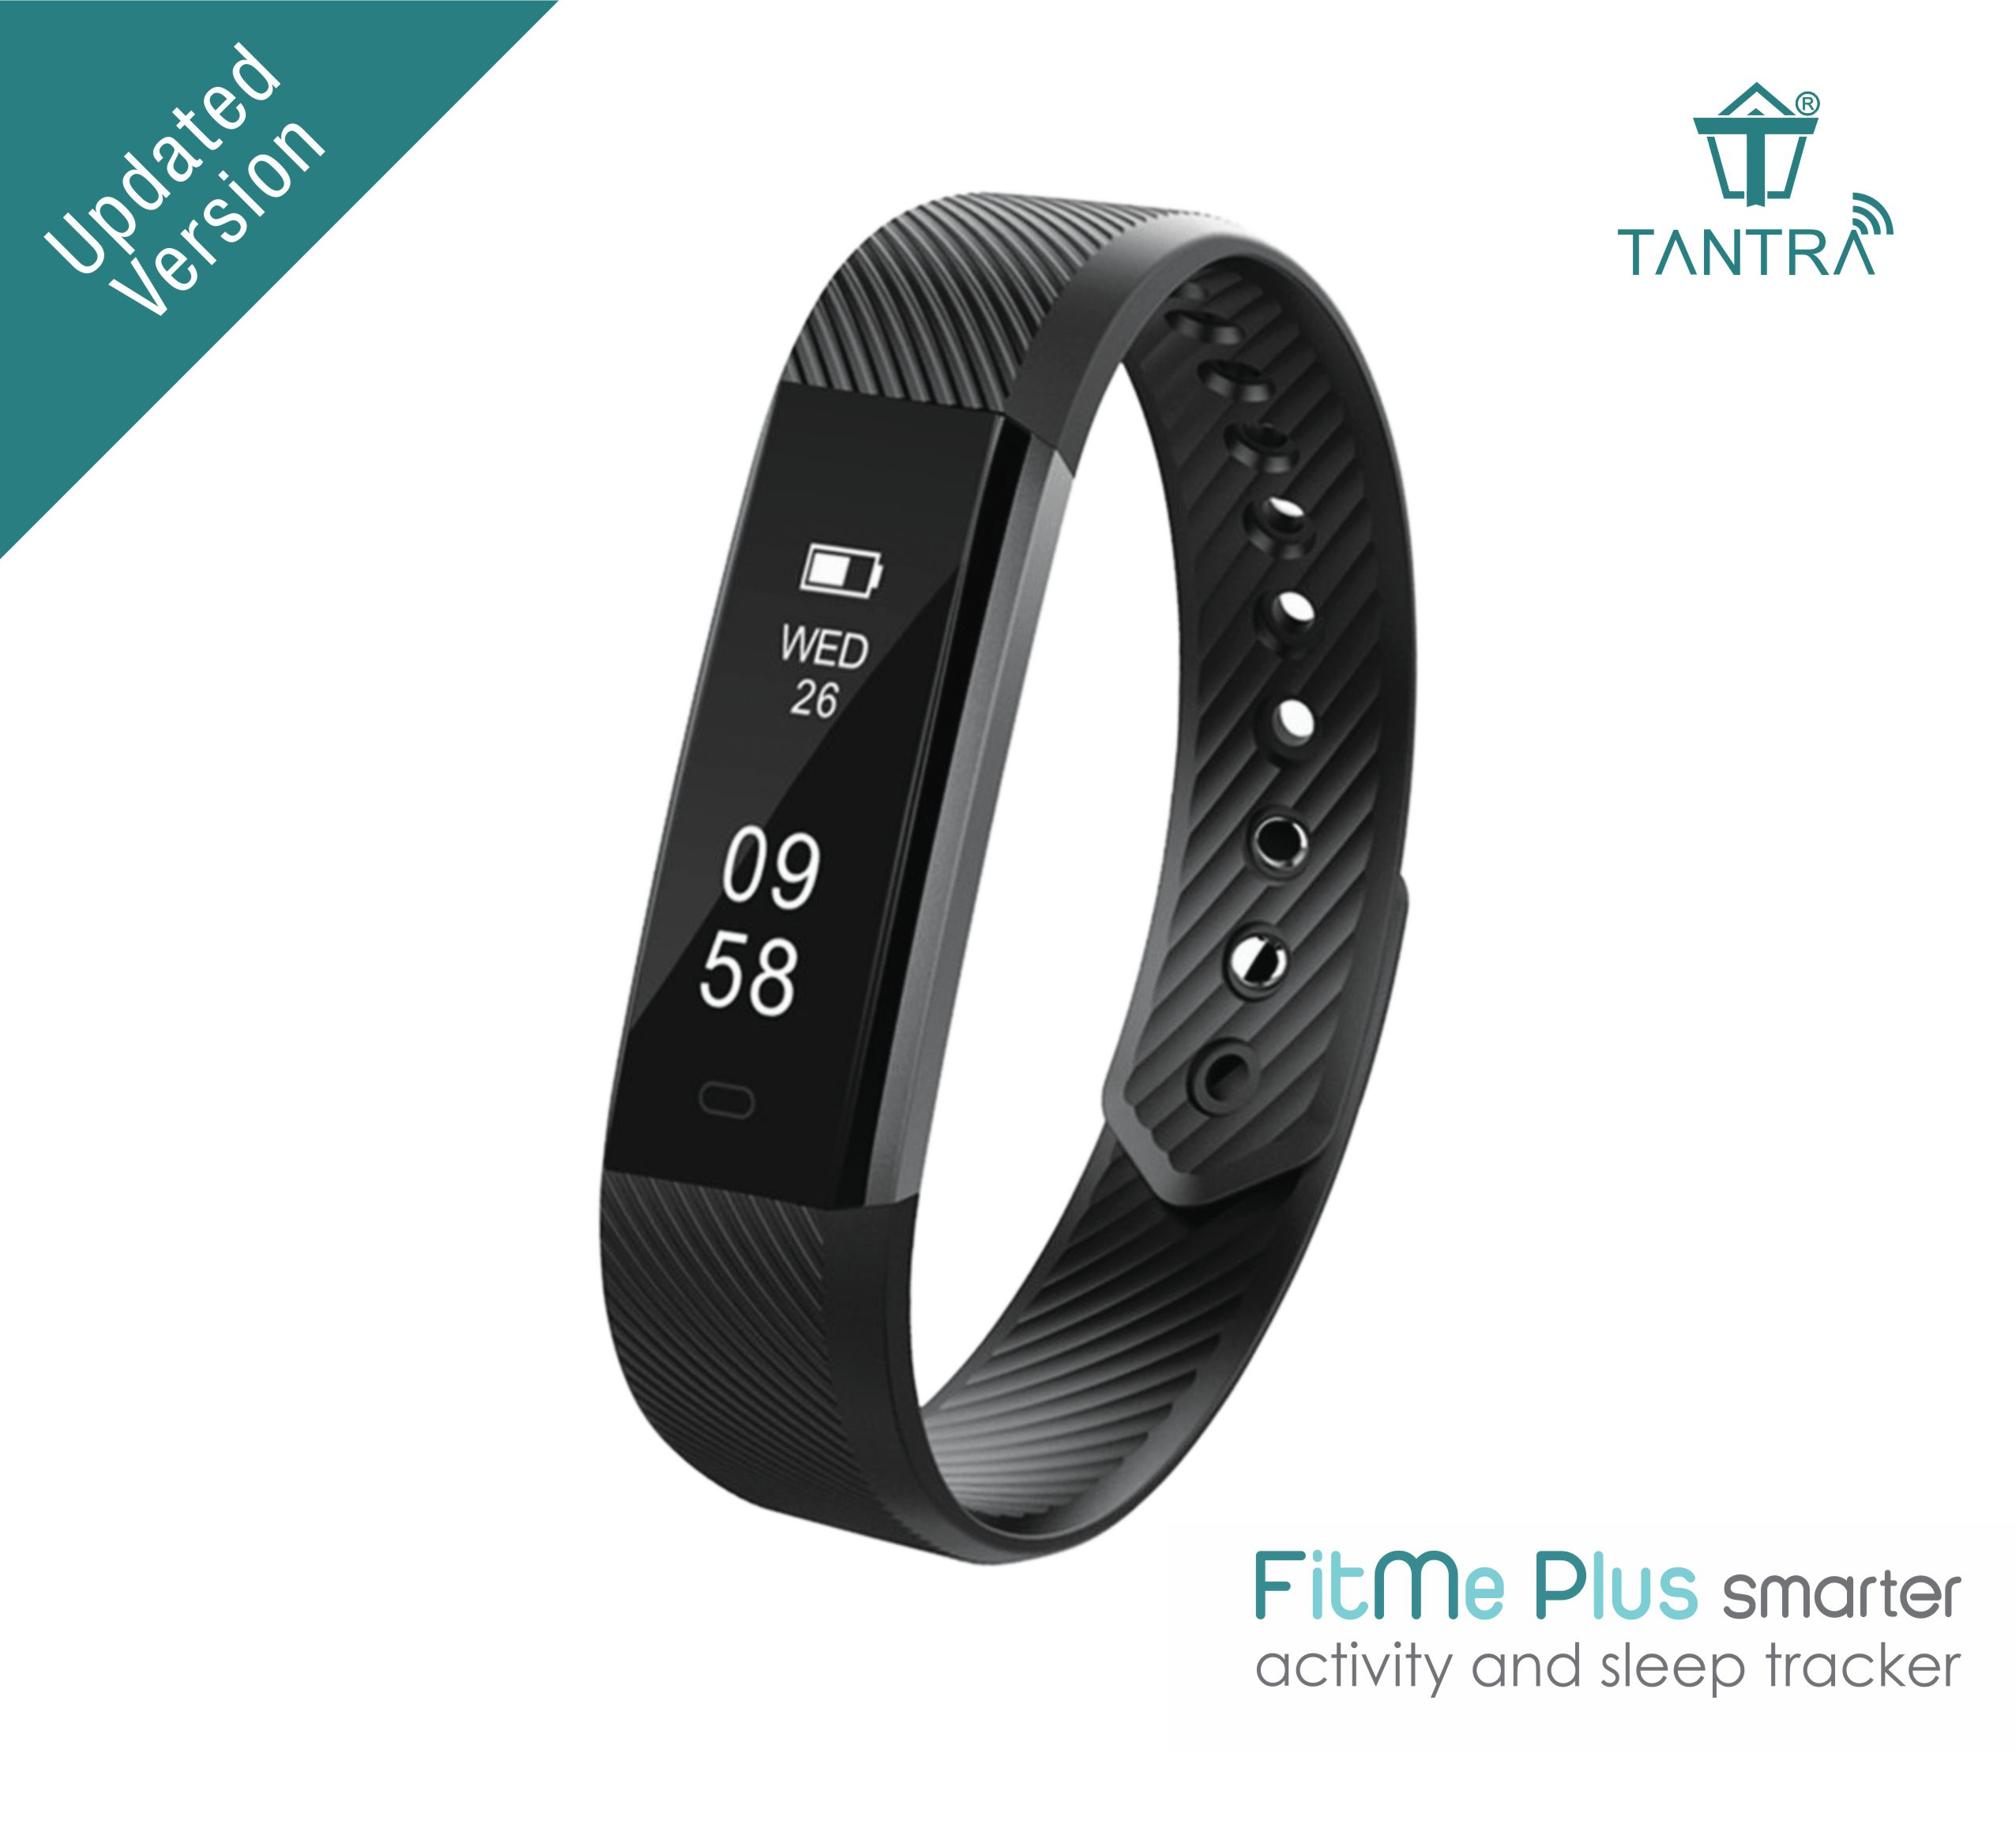 Tantra FitMe Plus IP67 Waterproof Fitness Tracker band with Step Count, Sleep Monitor, Calorie Tracker and Anti lost